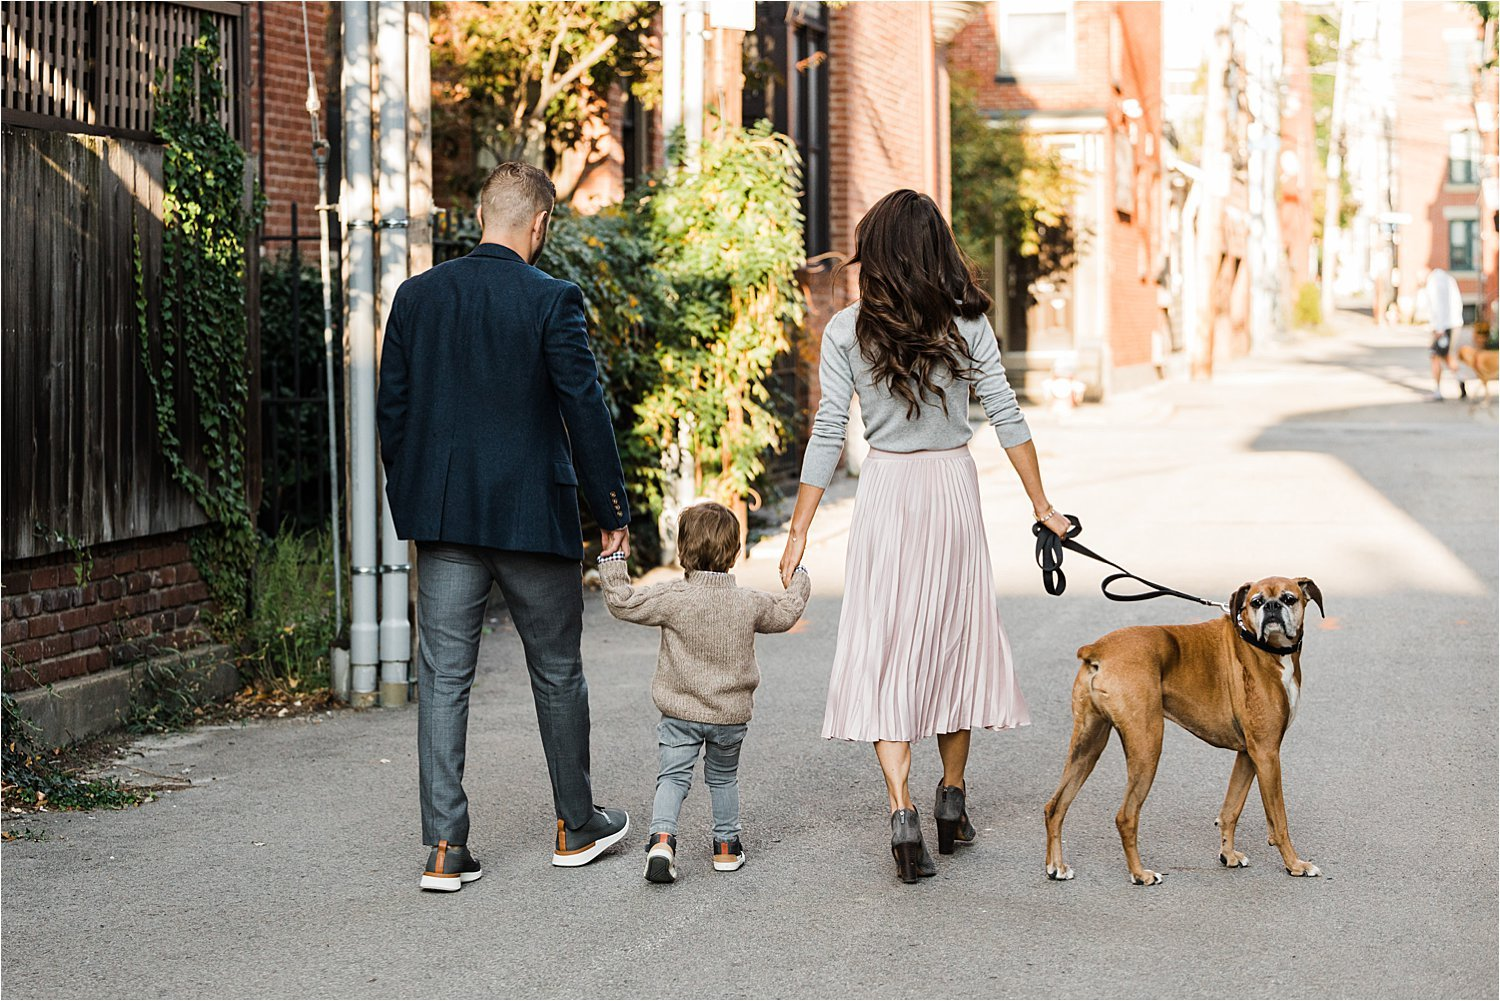 family walking hand in hand with dog